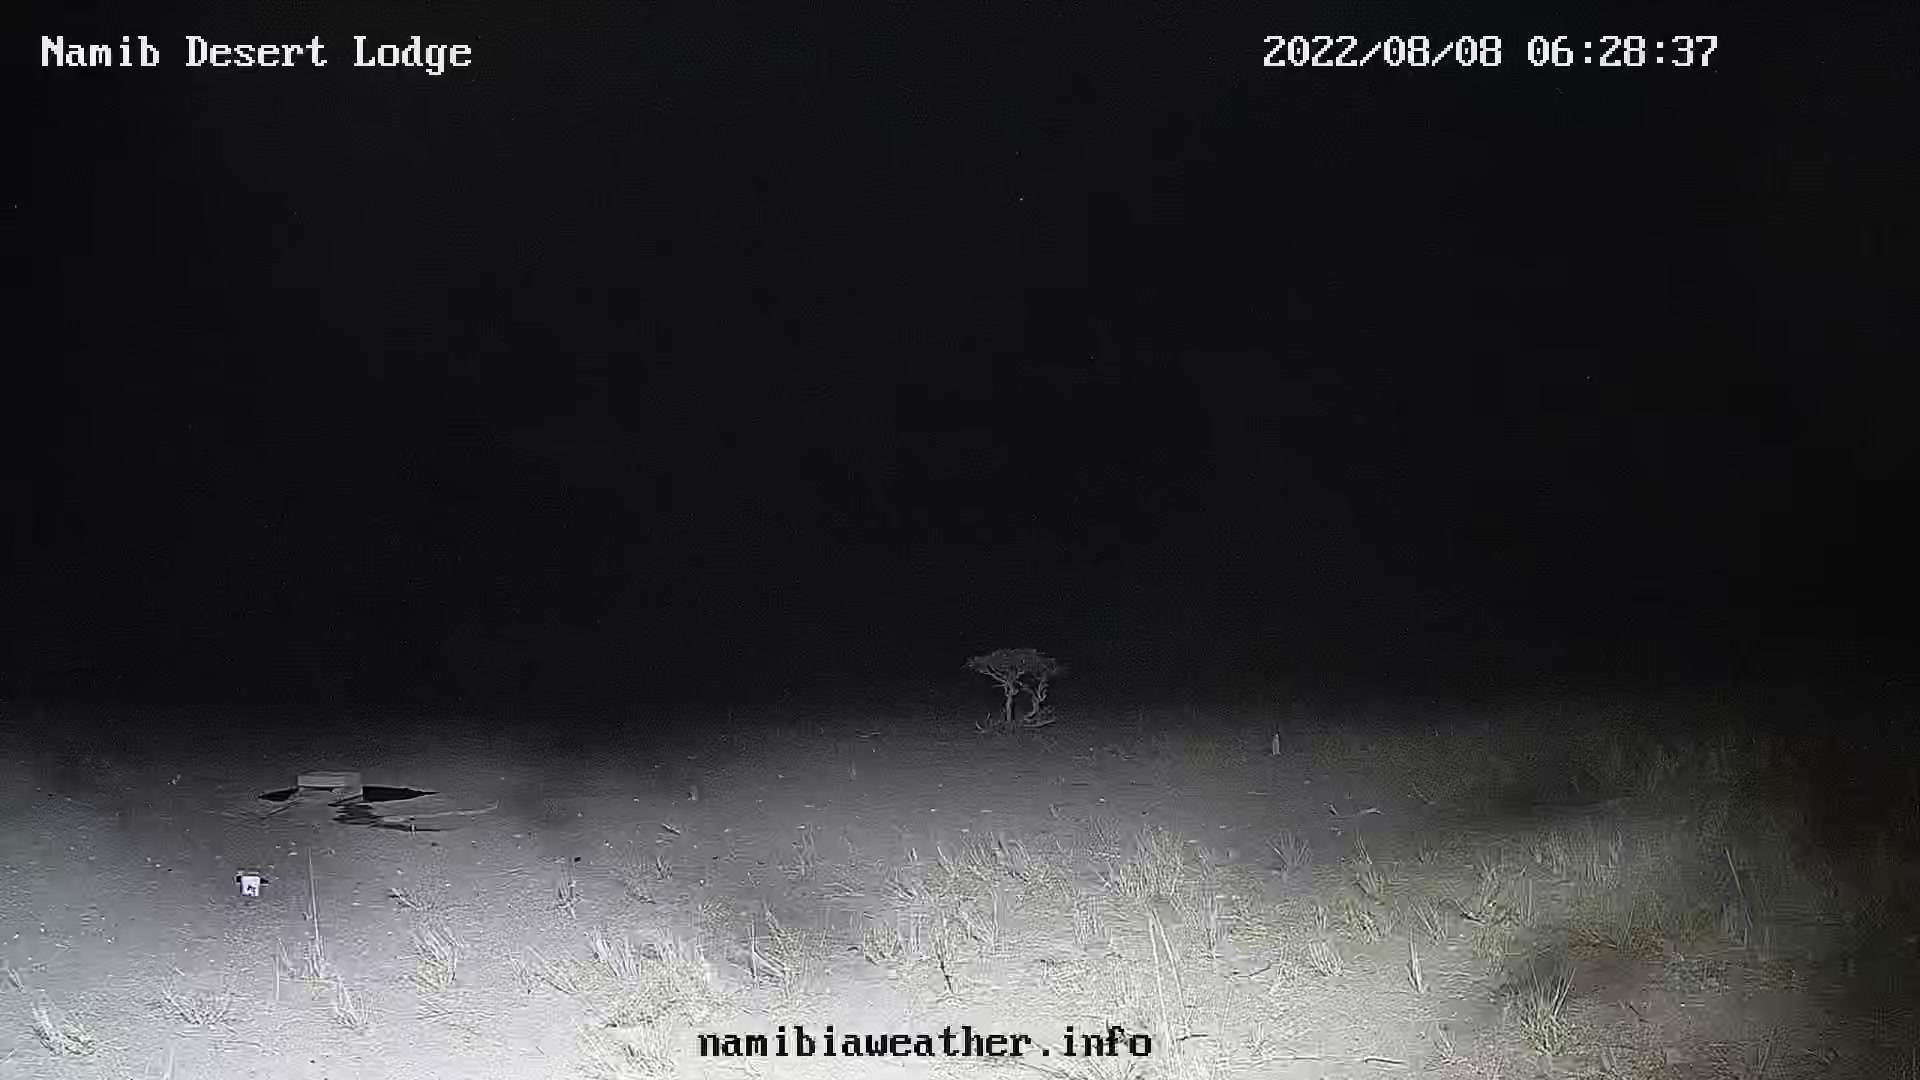 Gondwana Namib Desert Lodge Webcam